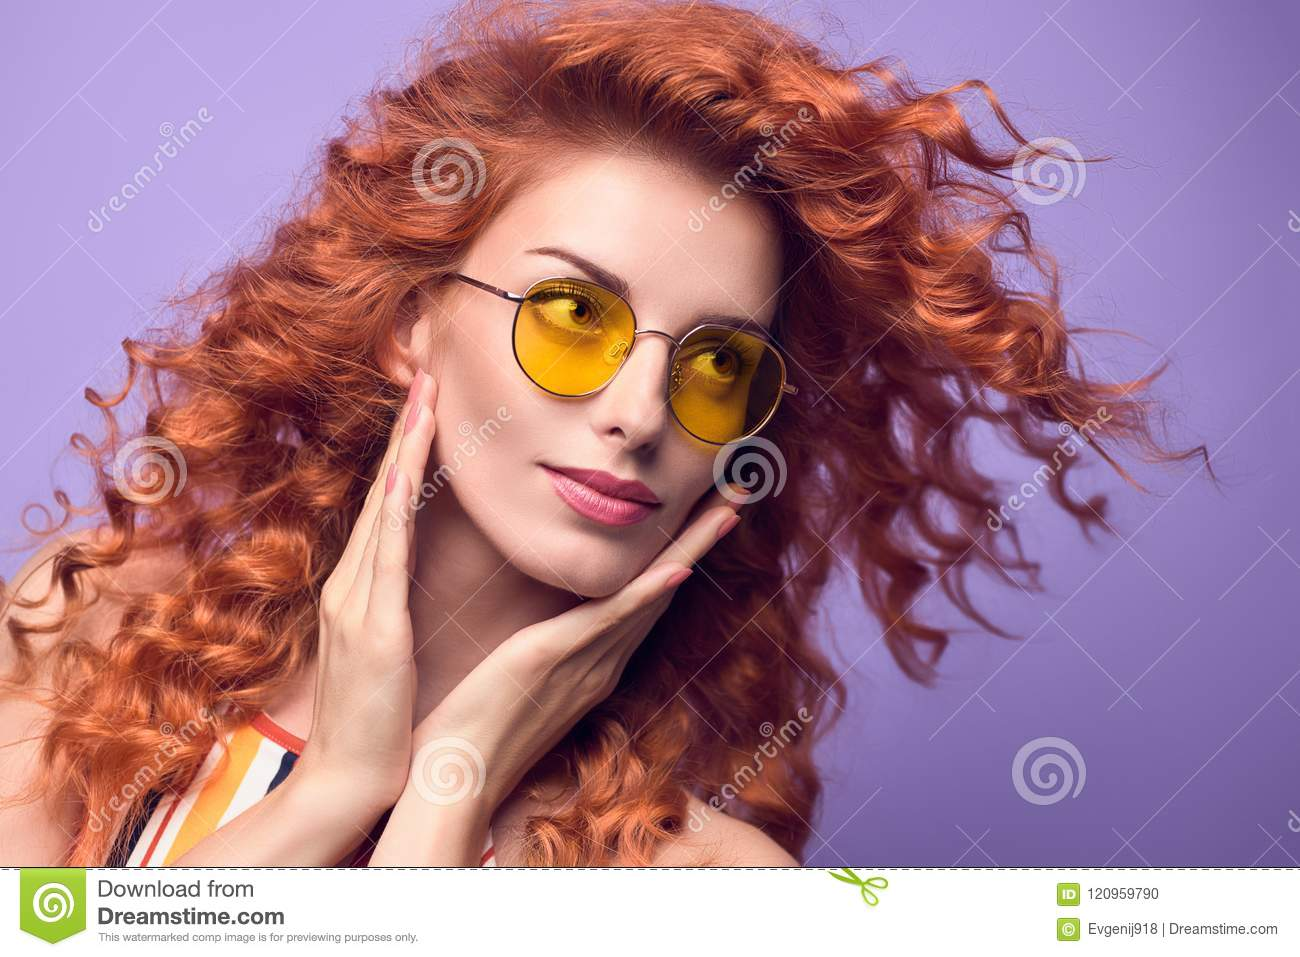 ecbc484d1ceb Fashion Portrait Young Beautiful Happy woman with Trendy Curly Hairstyle  Smiling in Studio. Redhead Girl in Stylish Summer Sunglasses. Attractive  Playful ...